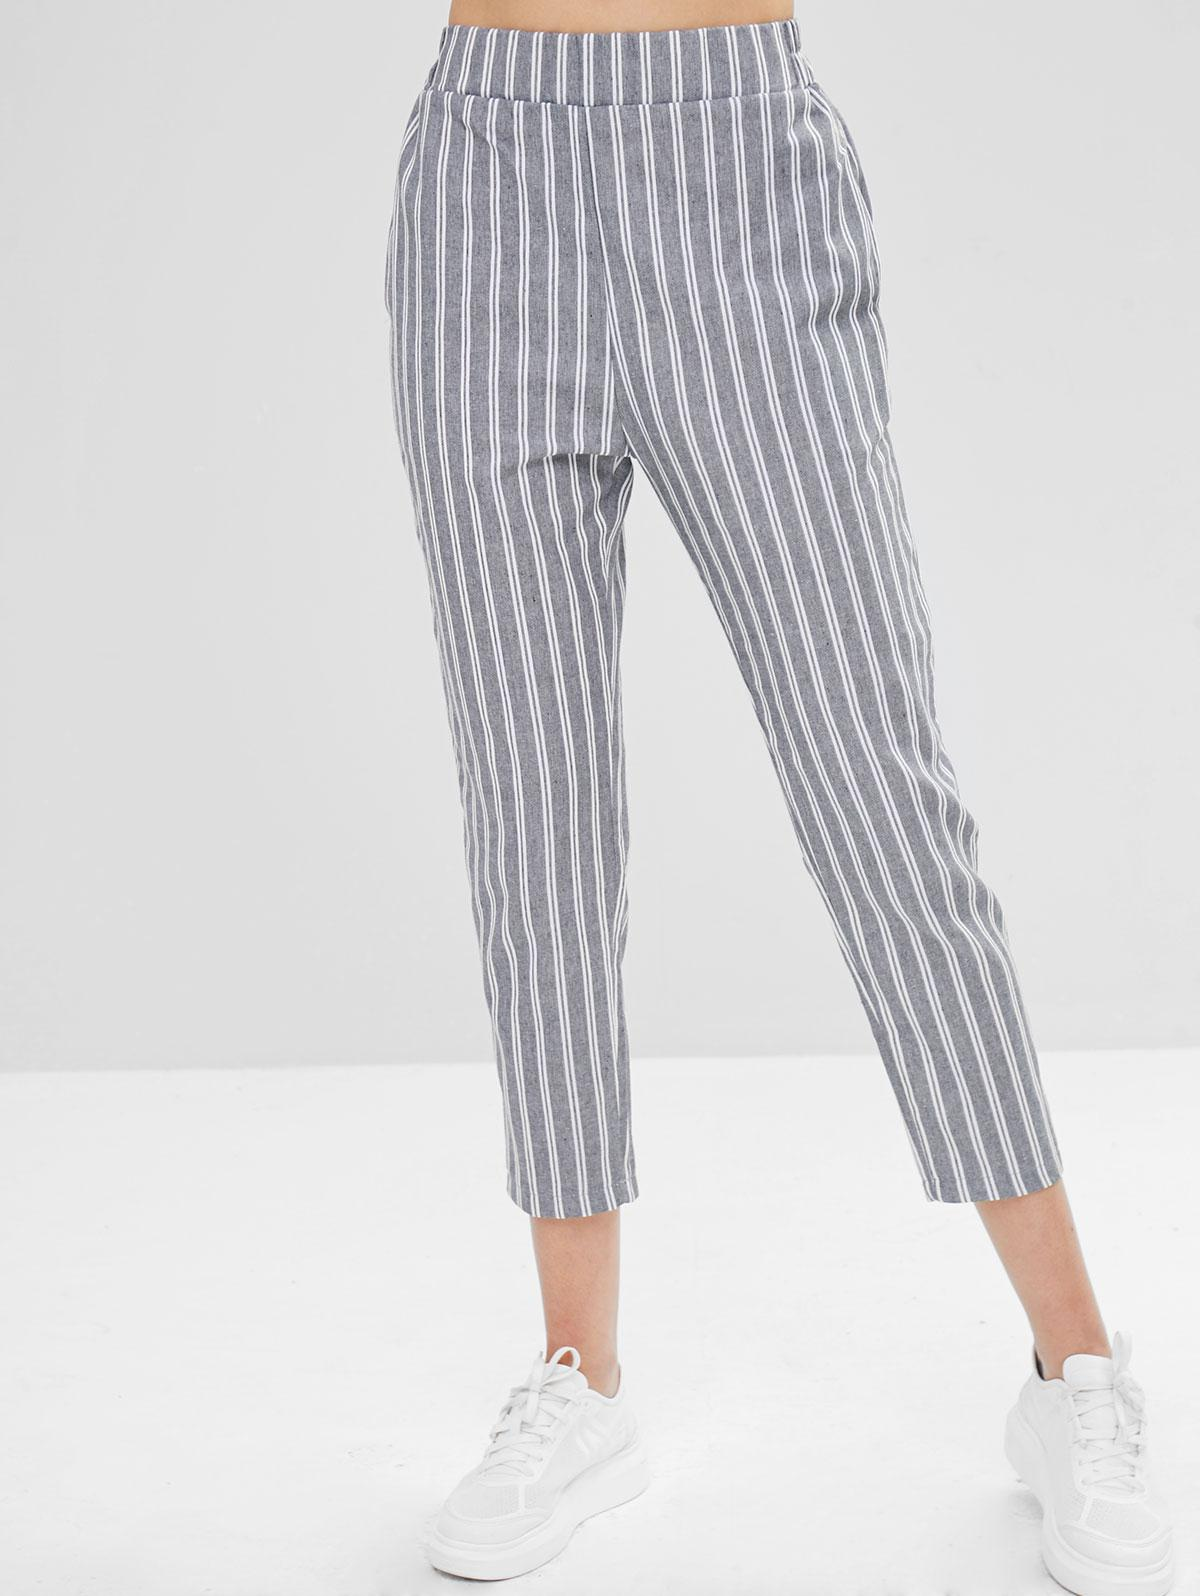 Striped Straight High Waisted Pants